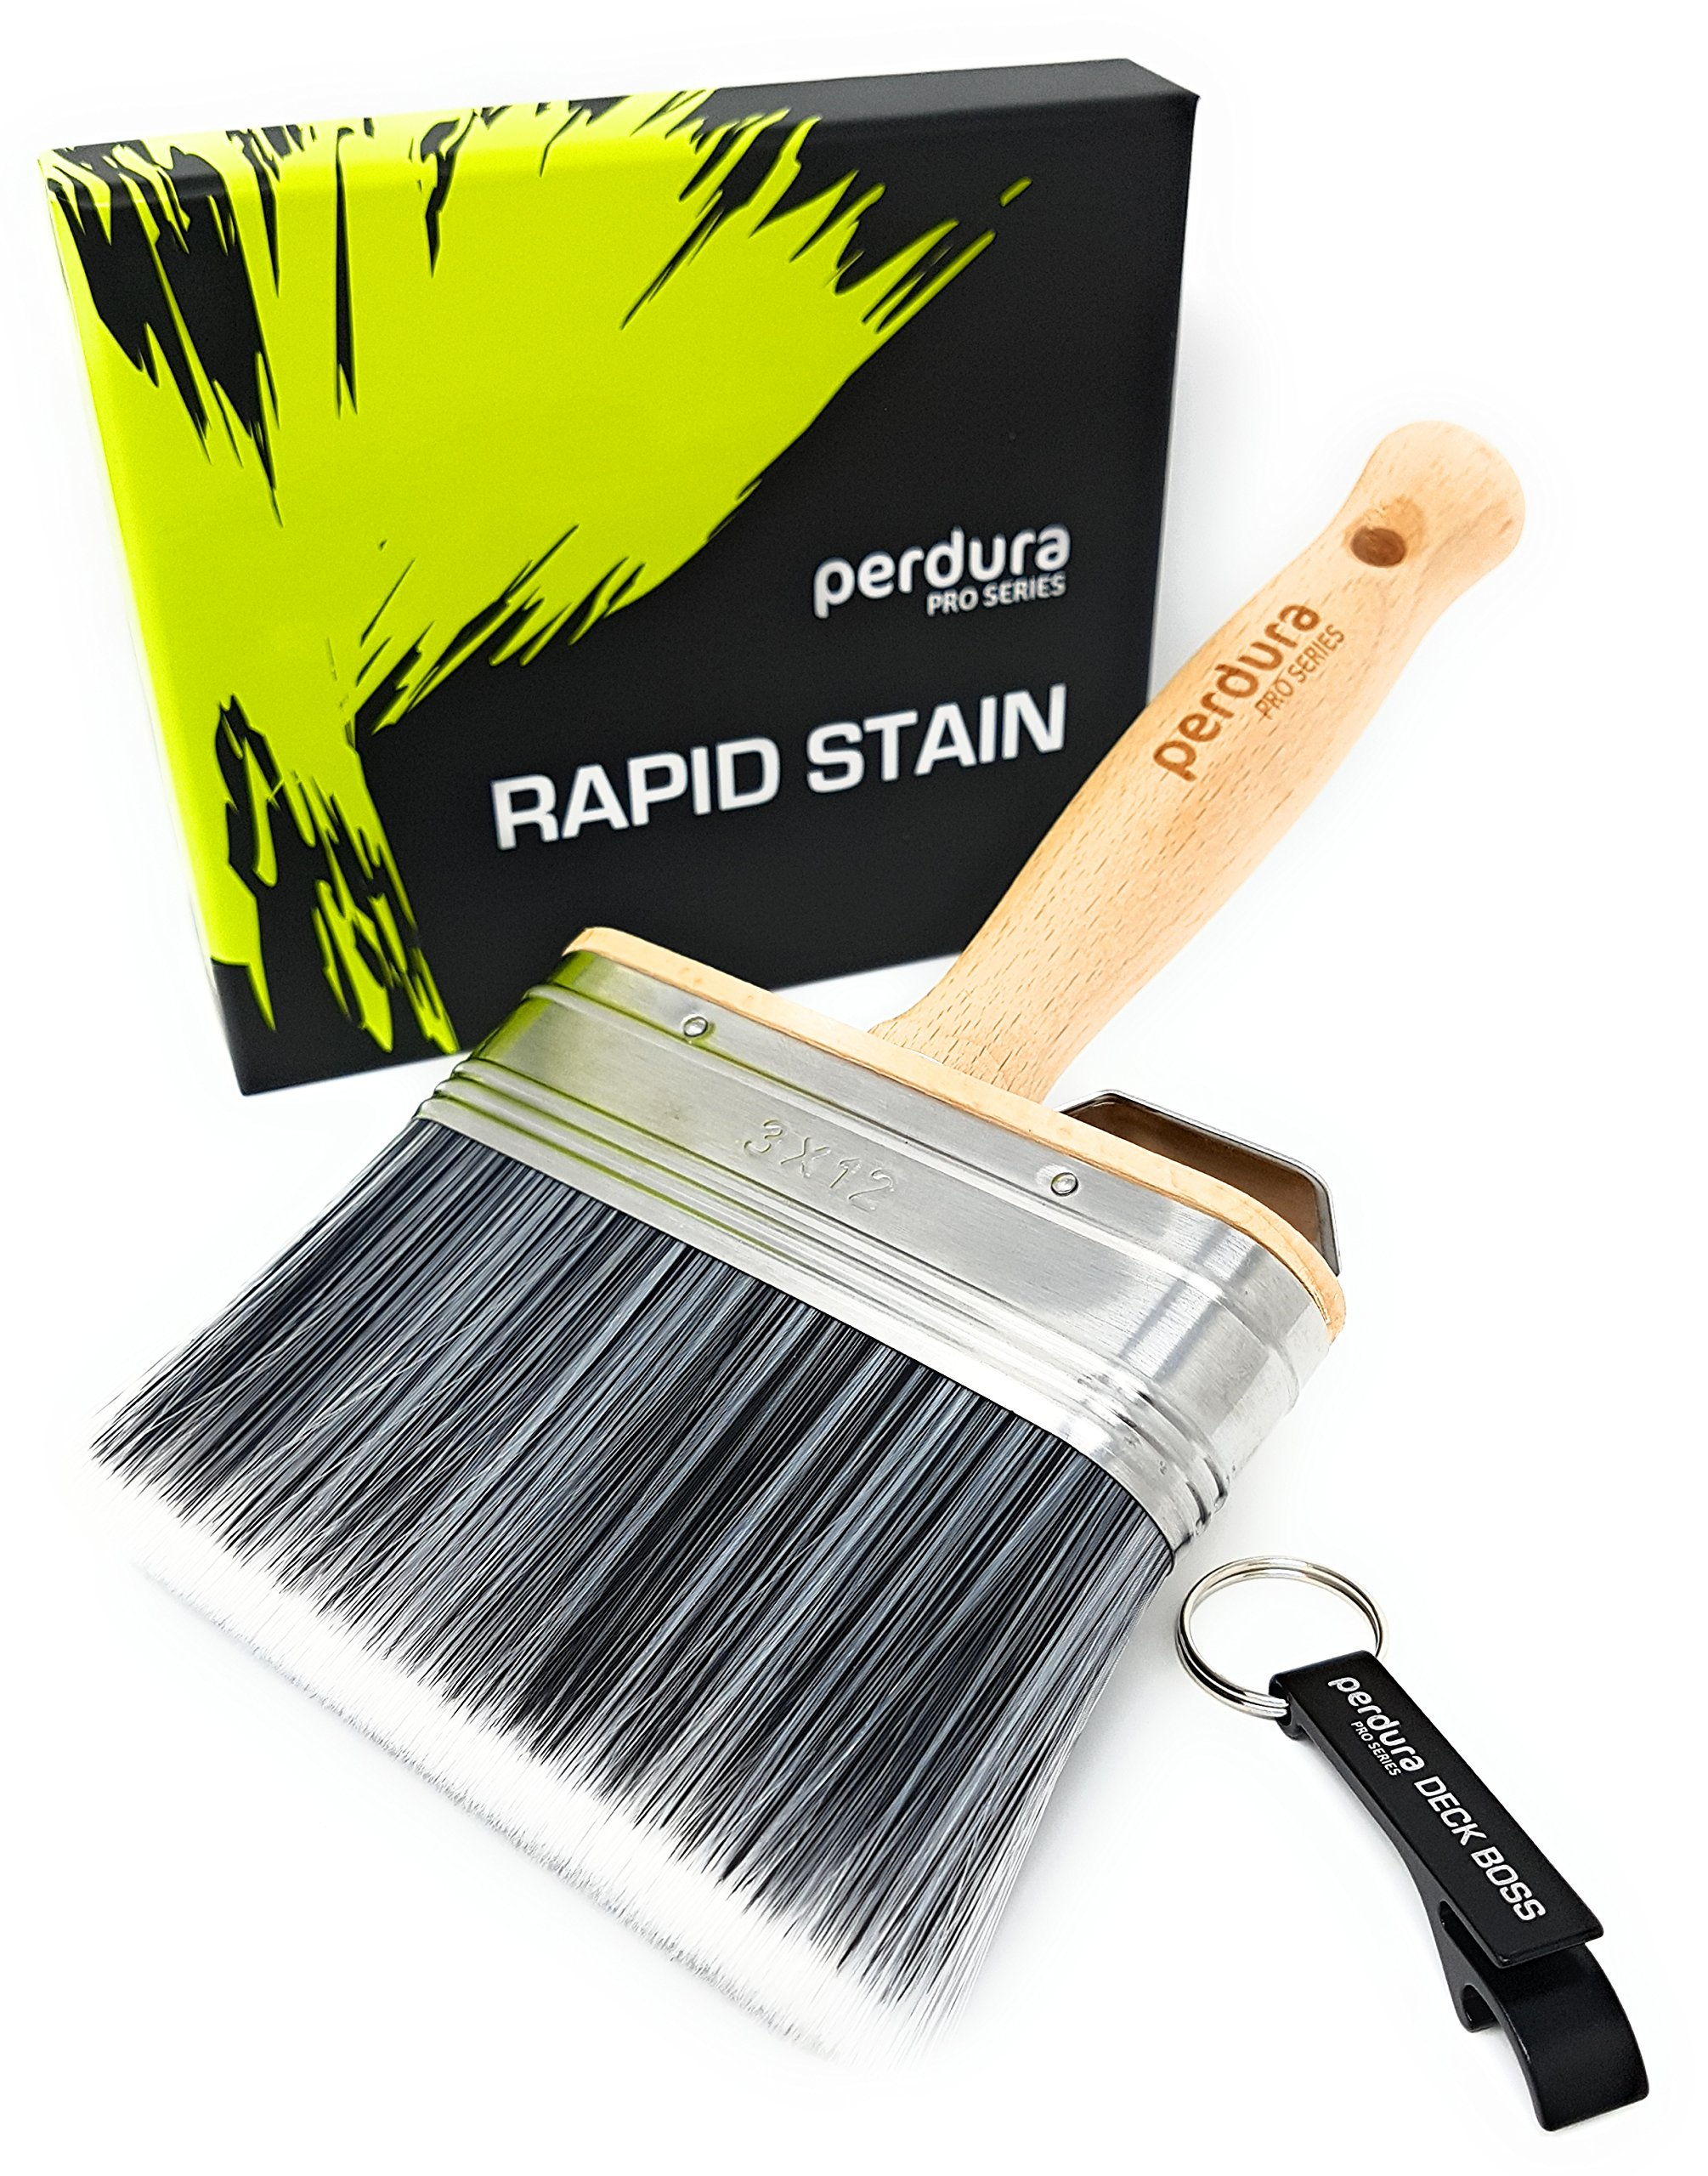 Perdura Rapid Stain Deck Stain Brush Fence Floor Applicator - 5 inch Paint Brush - Stain Seal and Paint Fast! - Outlasts Other Paint Brush Tools - Water and Oil Based Coatings for Wood and Concrete by Perdura Pro Series Brushes